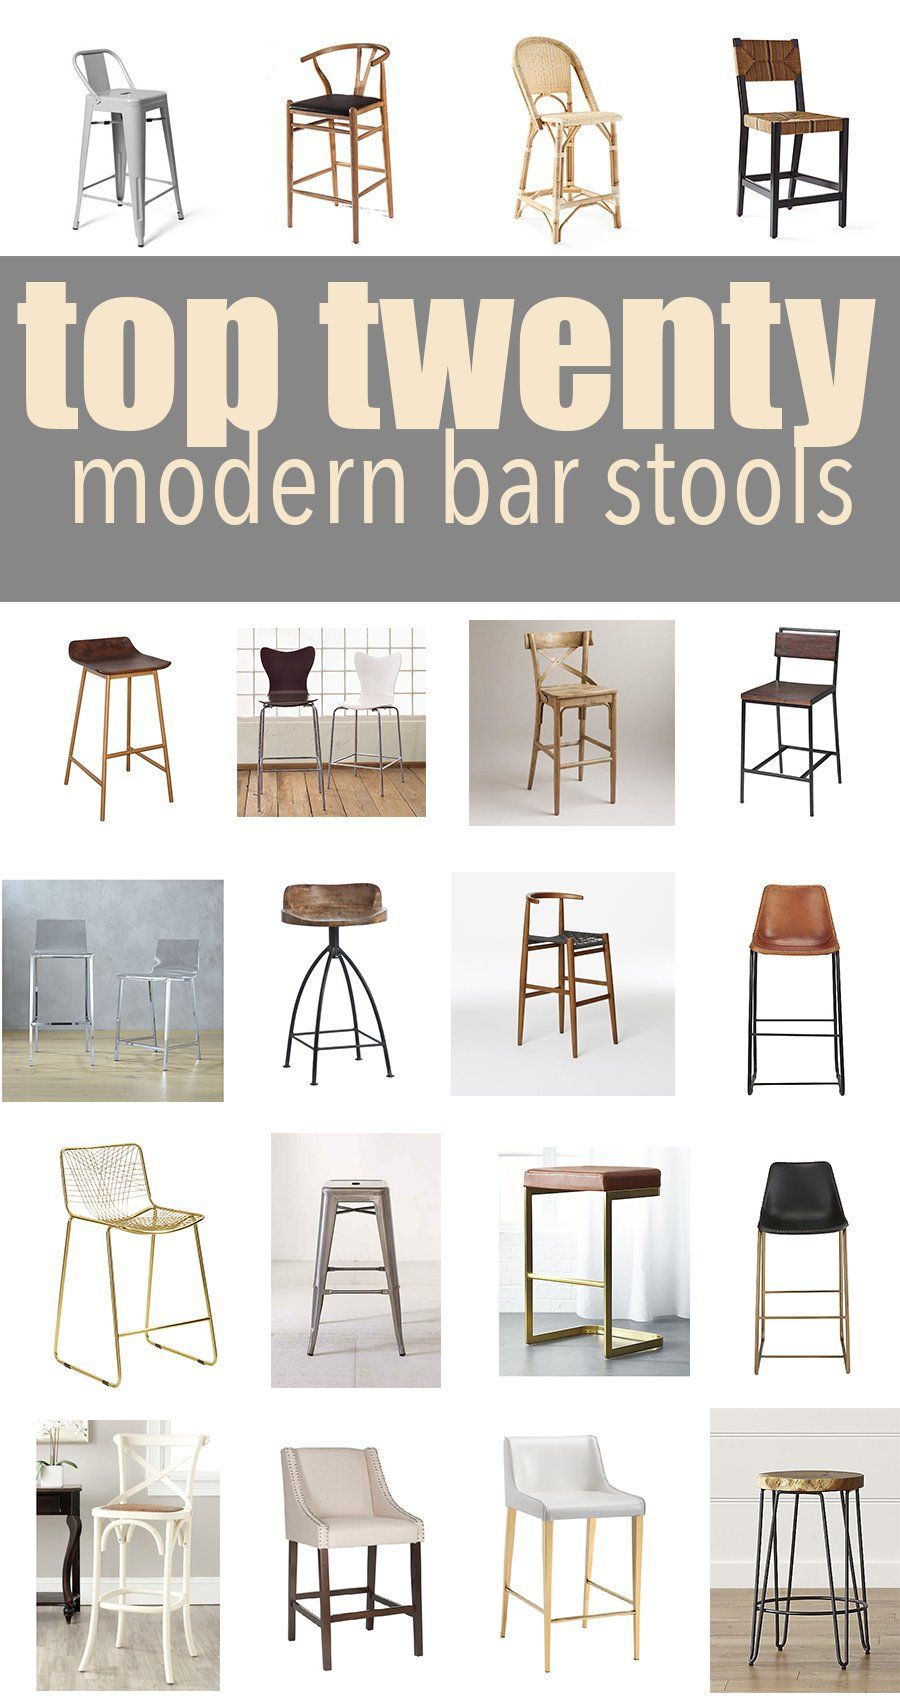 Top 10 Modern Kitchen Bar Stools  CC and Mike  Lifestyle and